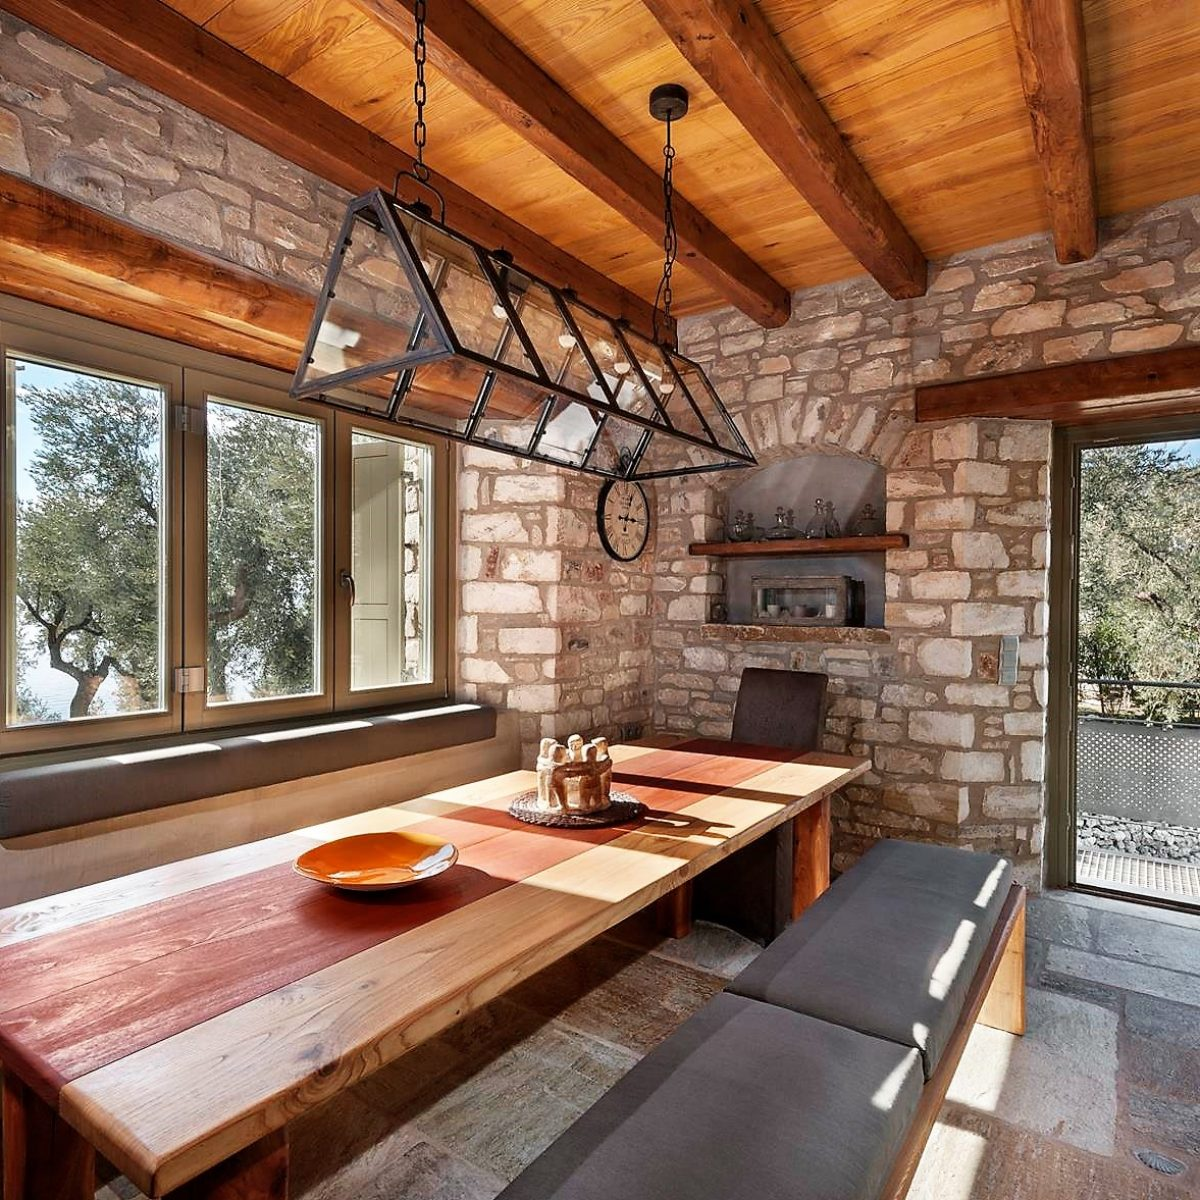 Stone – Wooden Prefabricated Houses